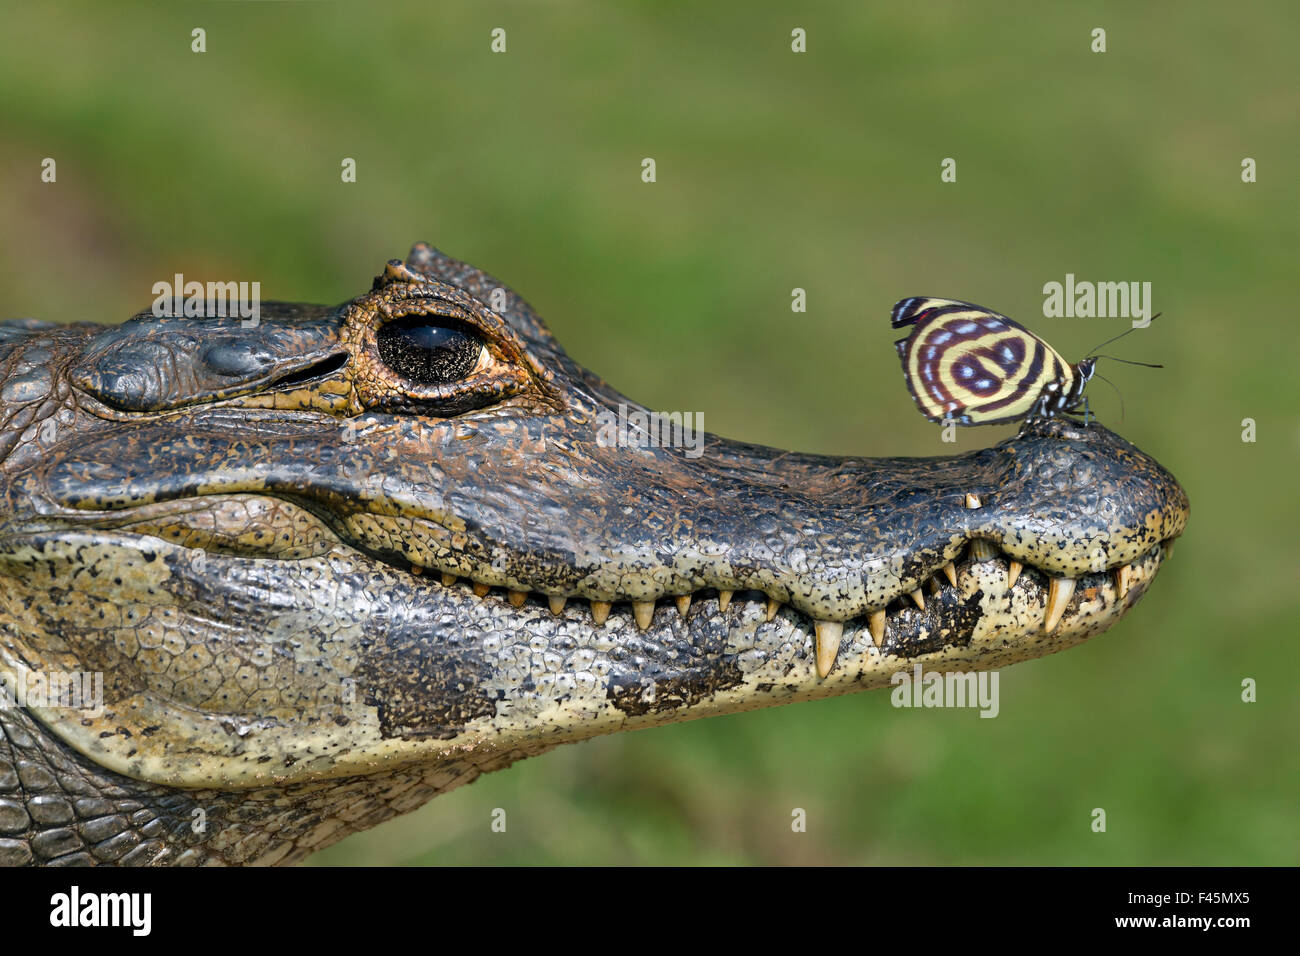 Yacare Caiman (Caiman yacare) with butterfly (Paulogramma pyracmon) resting on its snout, Pantanal, Brazil. Stock Photo